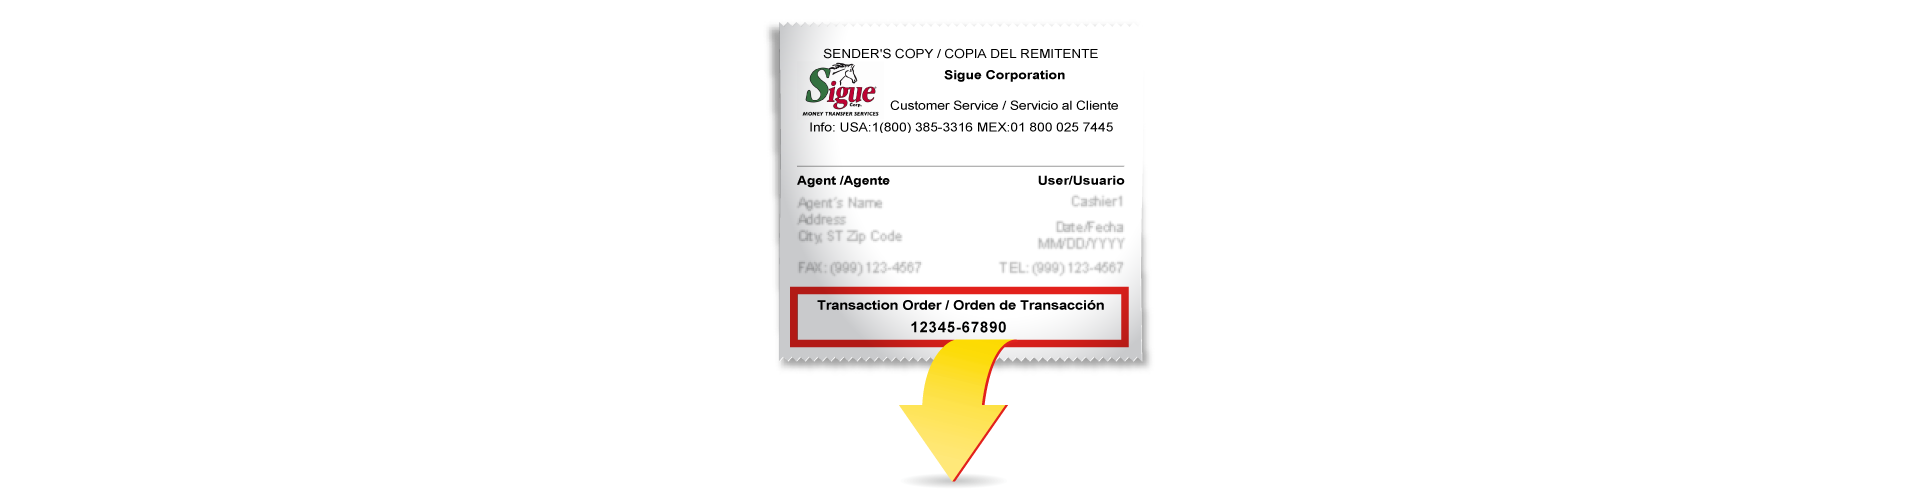 Sigue - Transaction order number